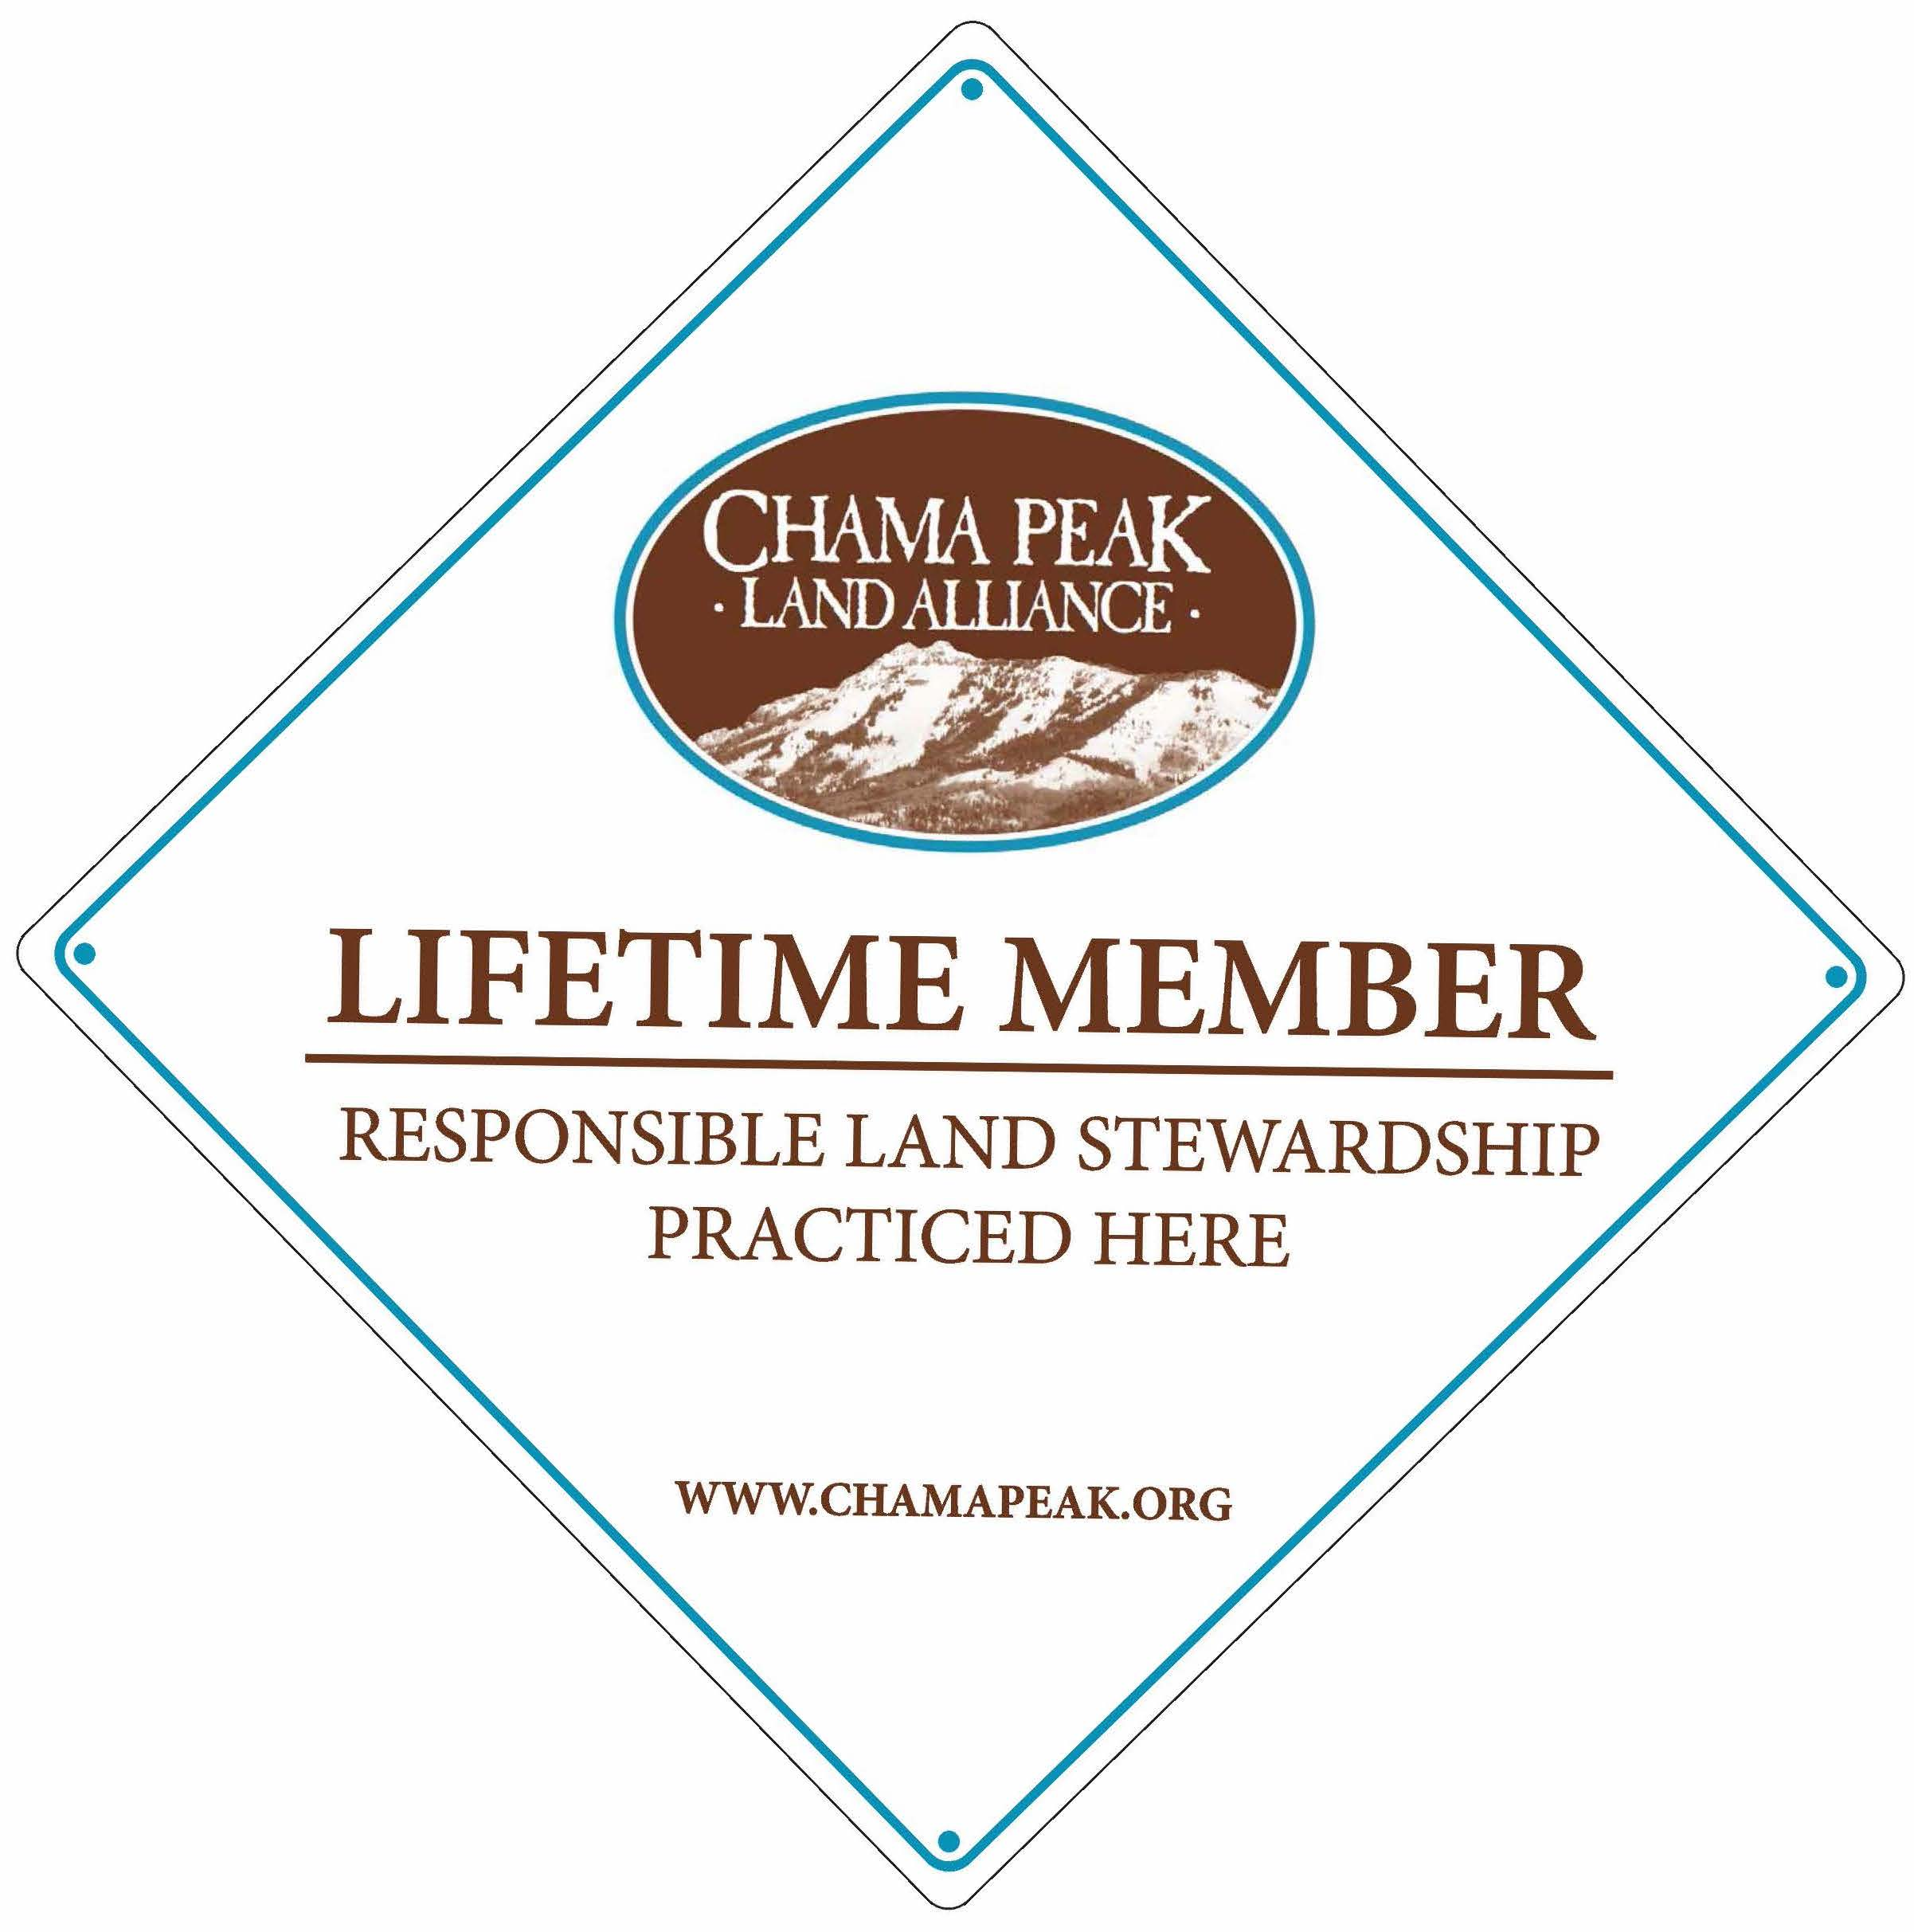 """Display your lifetime's commitment to good land stewardship with this 18""""x18"""" heavy duty aluminum sign, available to Lifetime Members only!"""